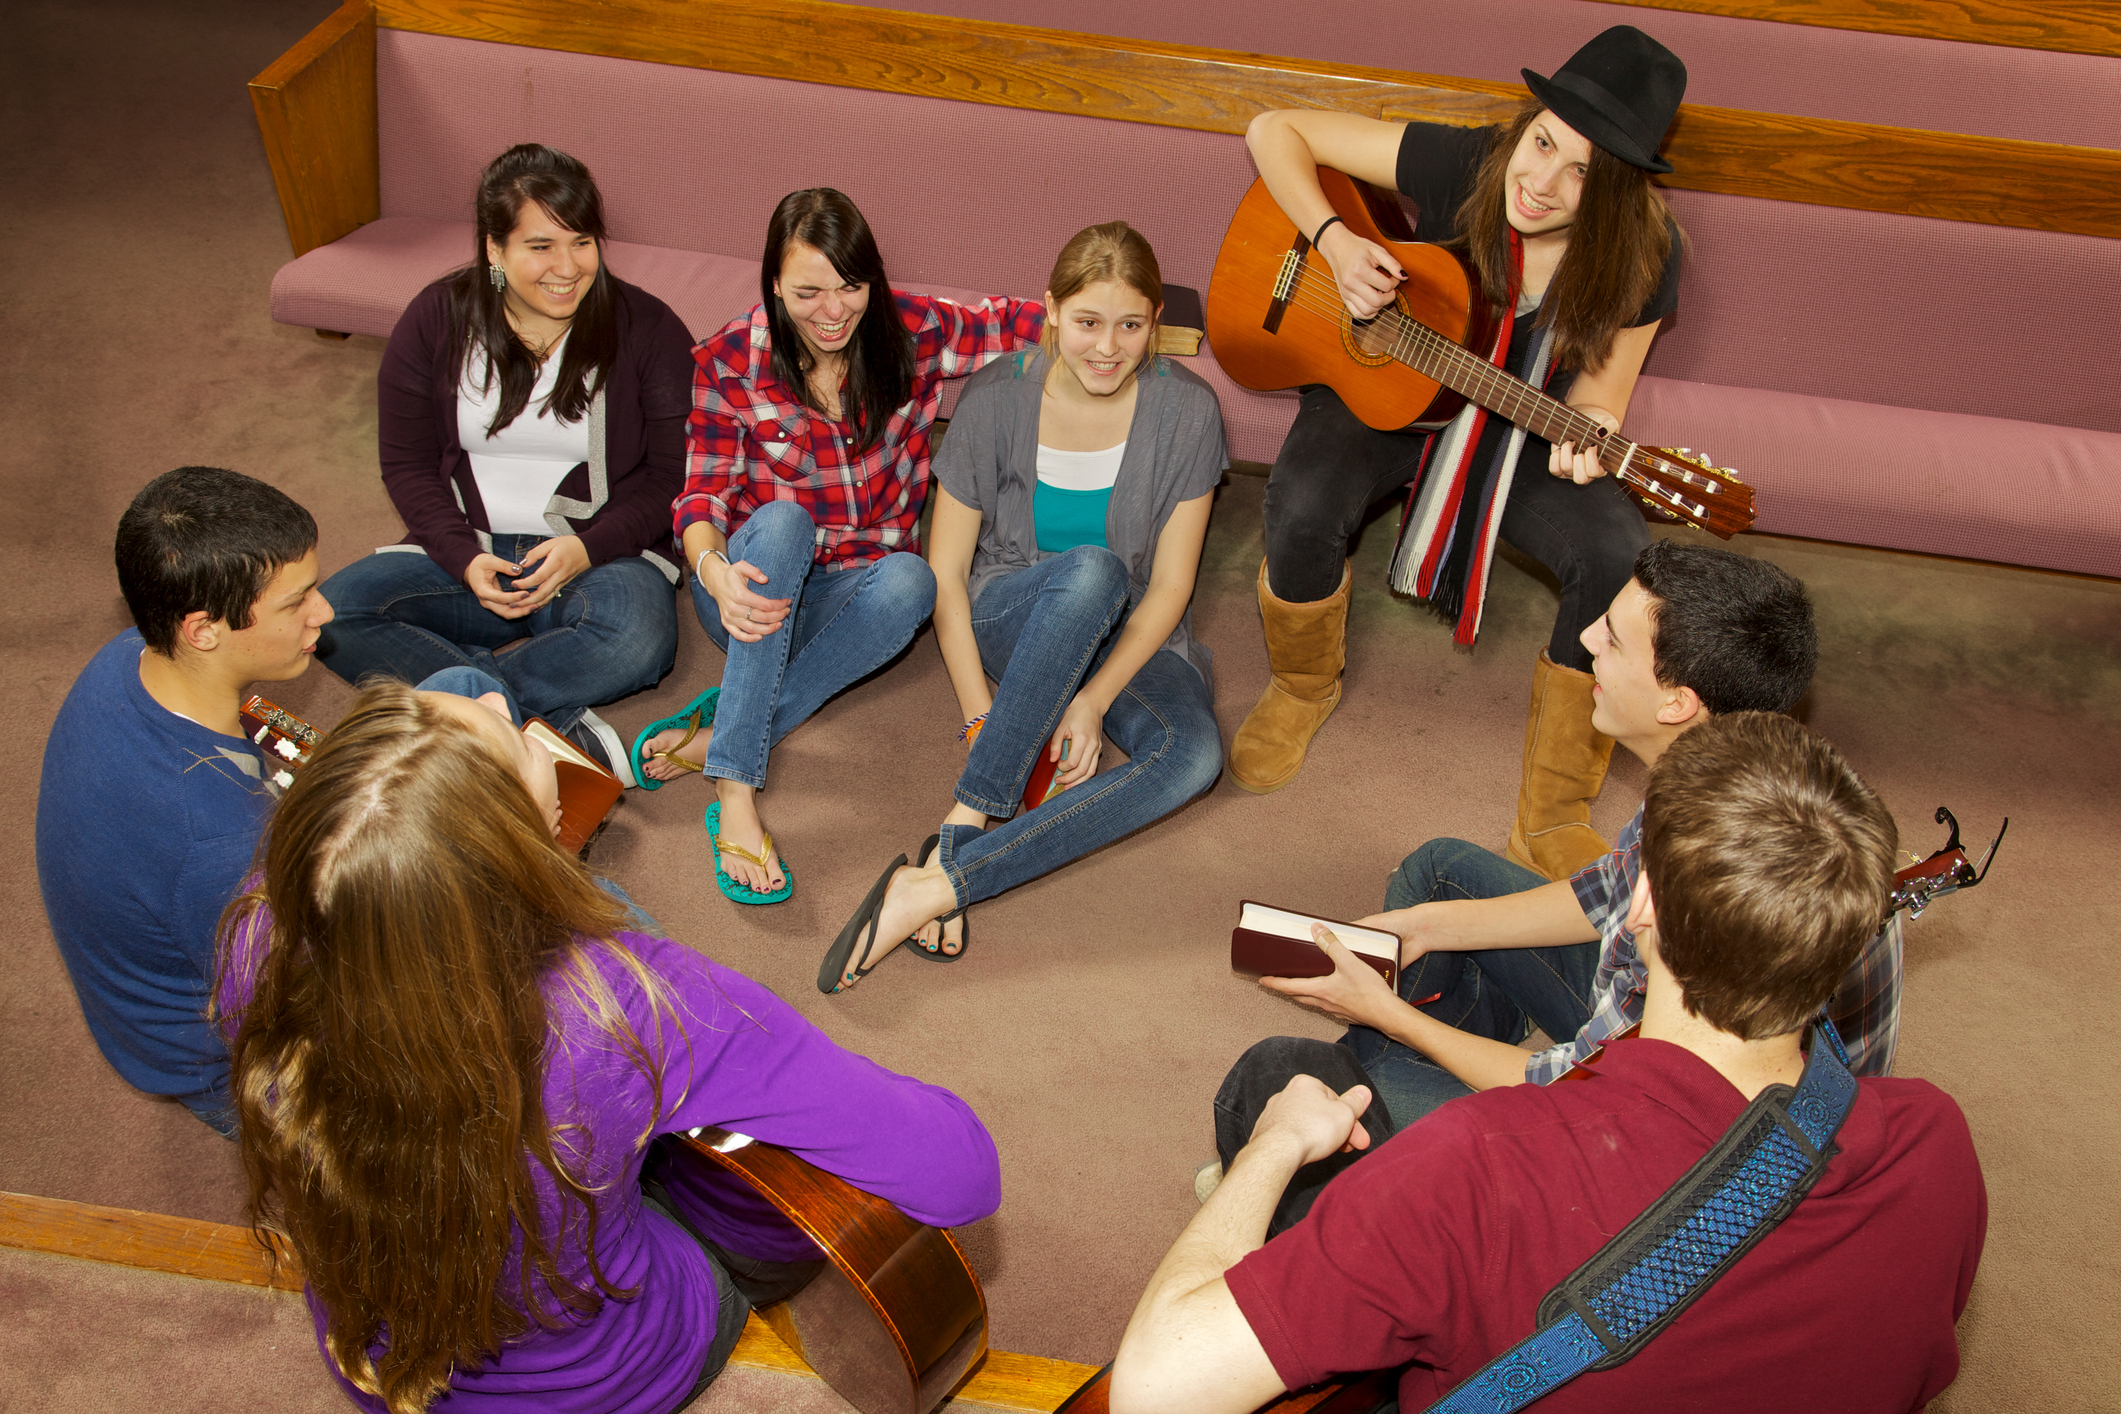 youth group talks on dating Myfishbites talks - free christian youth work resources sessions and ideas for youth workers short on time or inspiration.